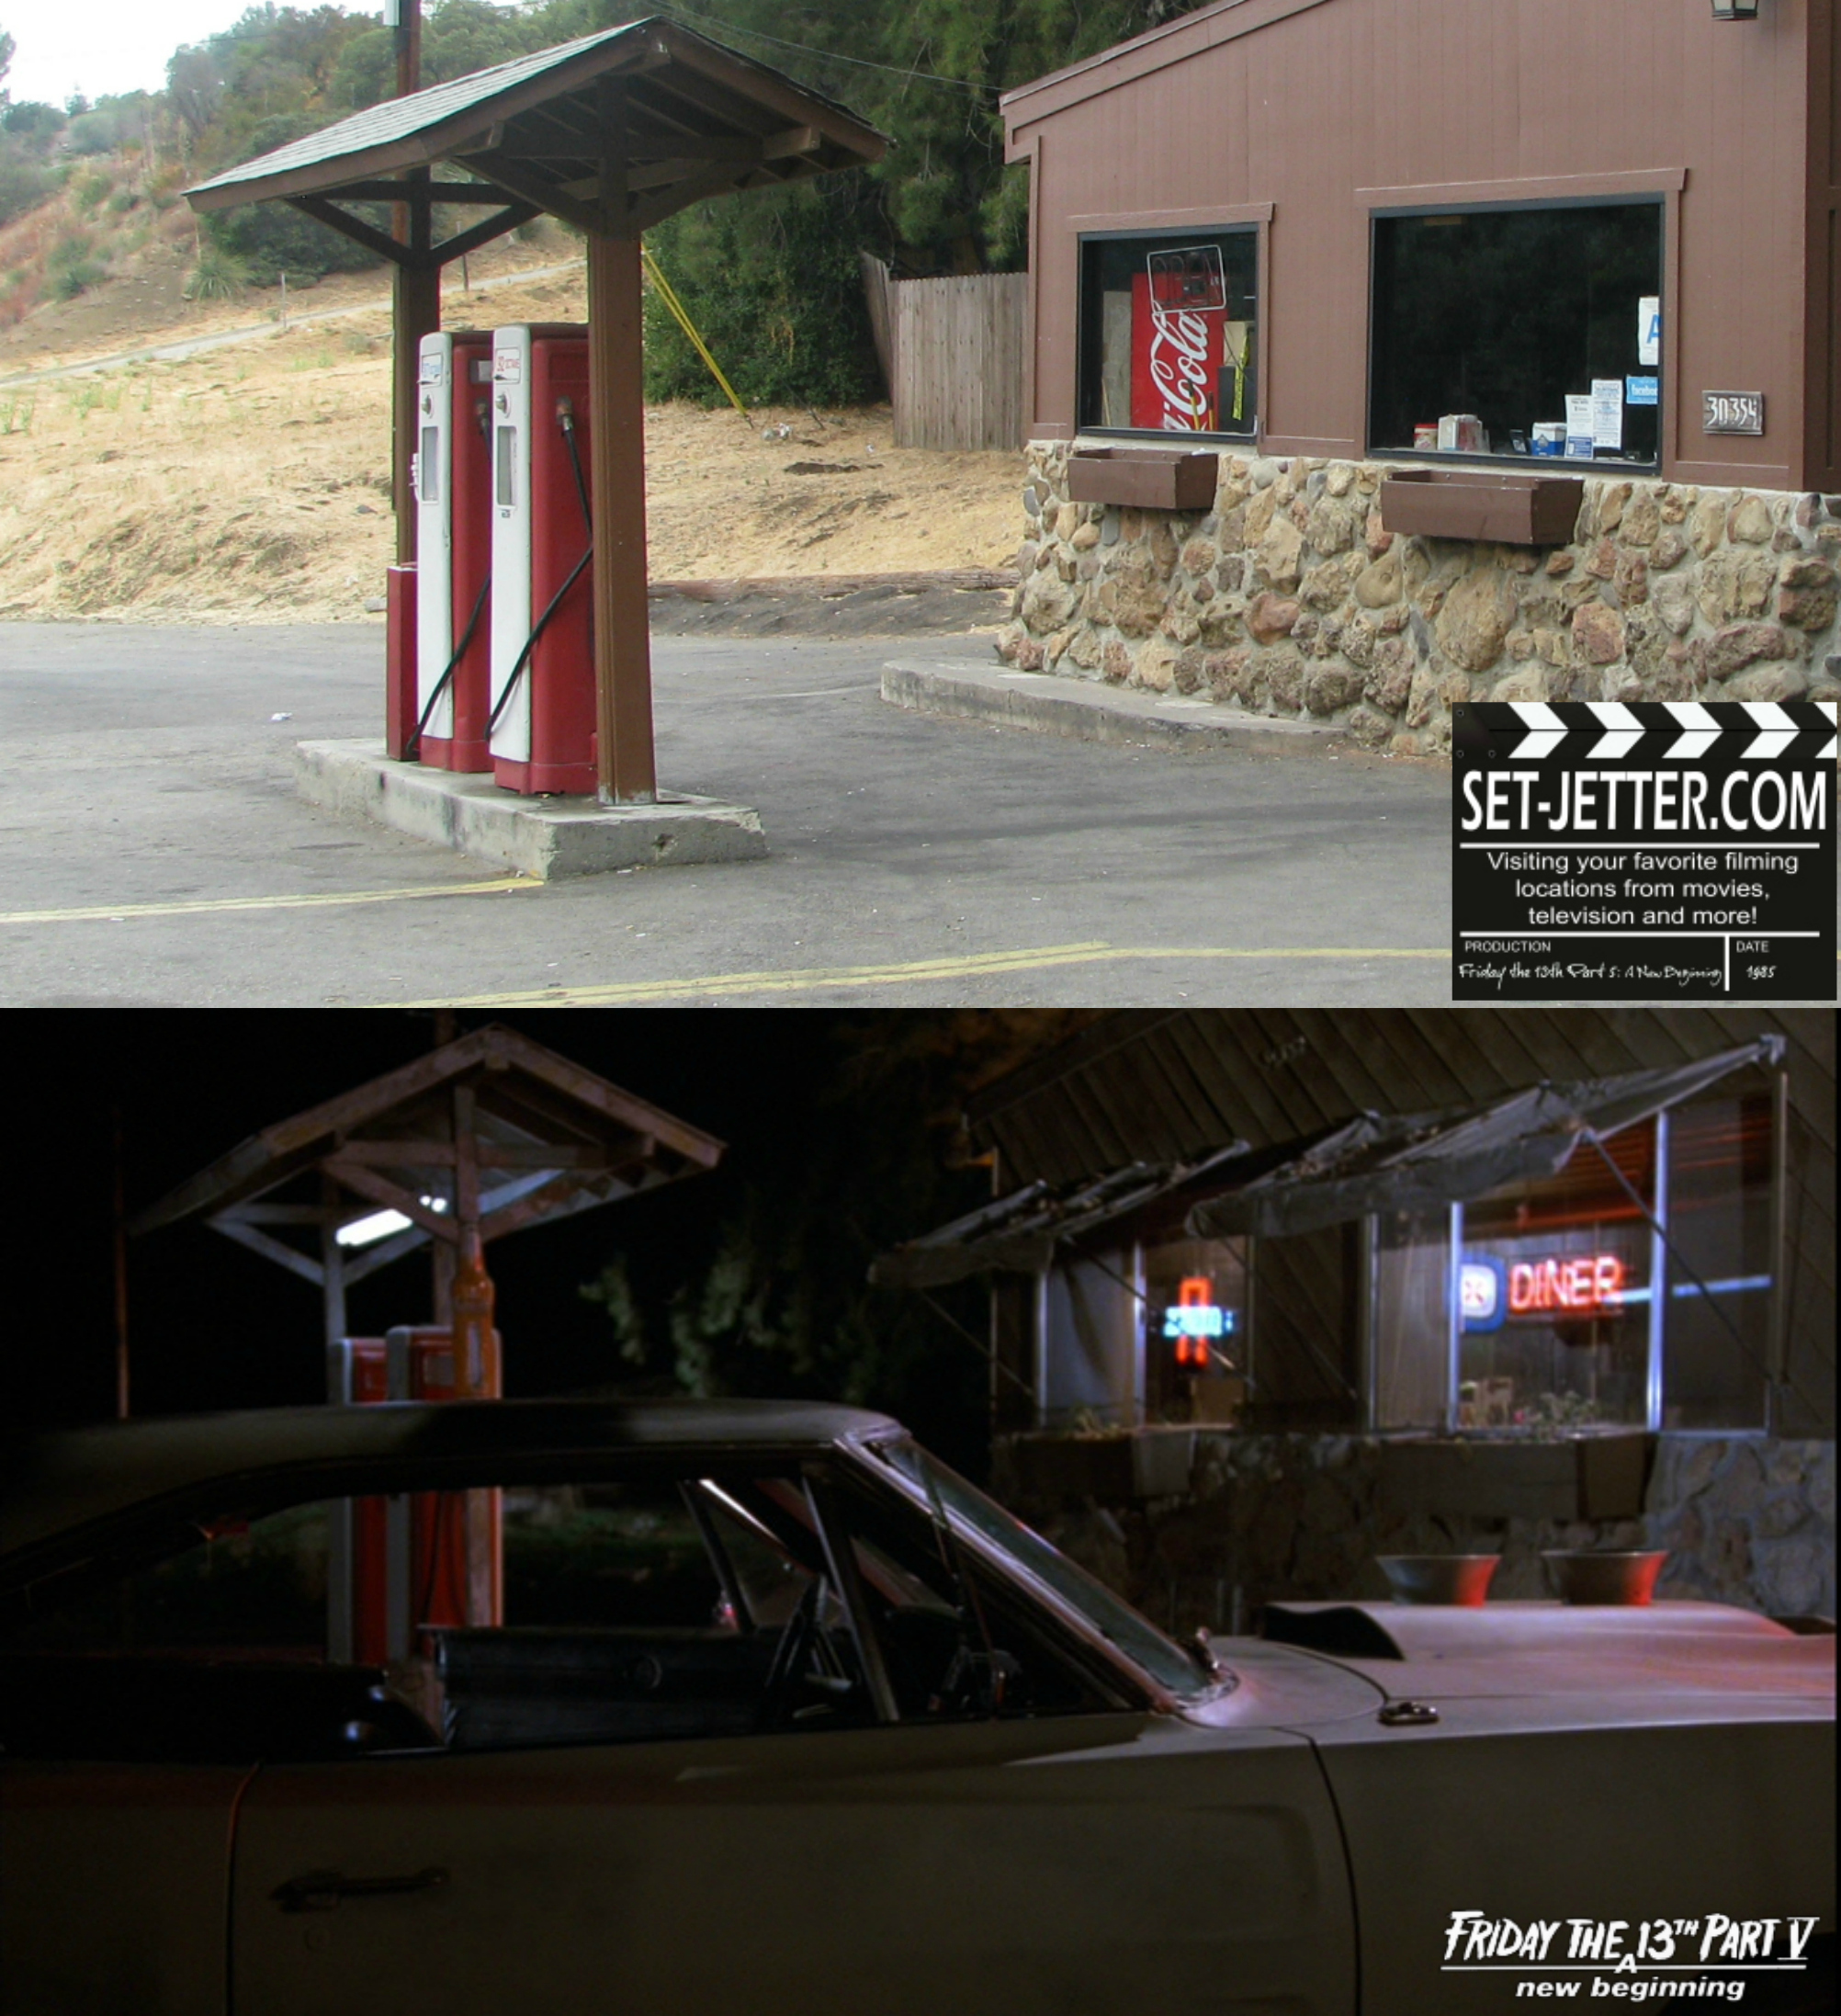 Friday the 13th Part V comparison 17.jpg